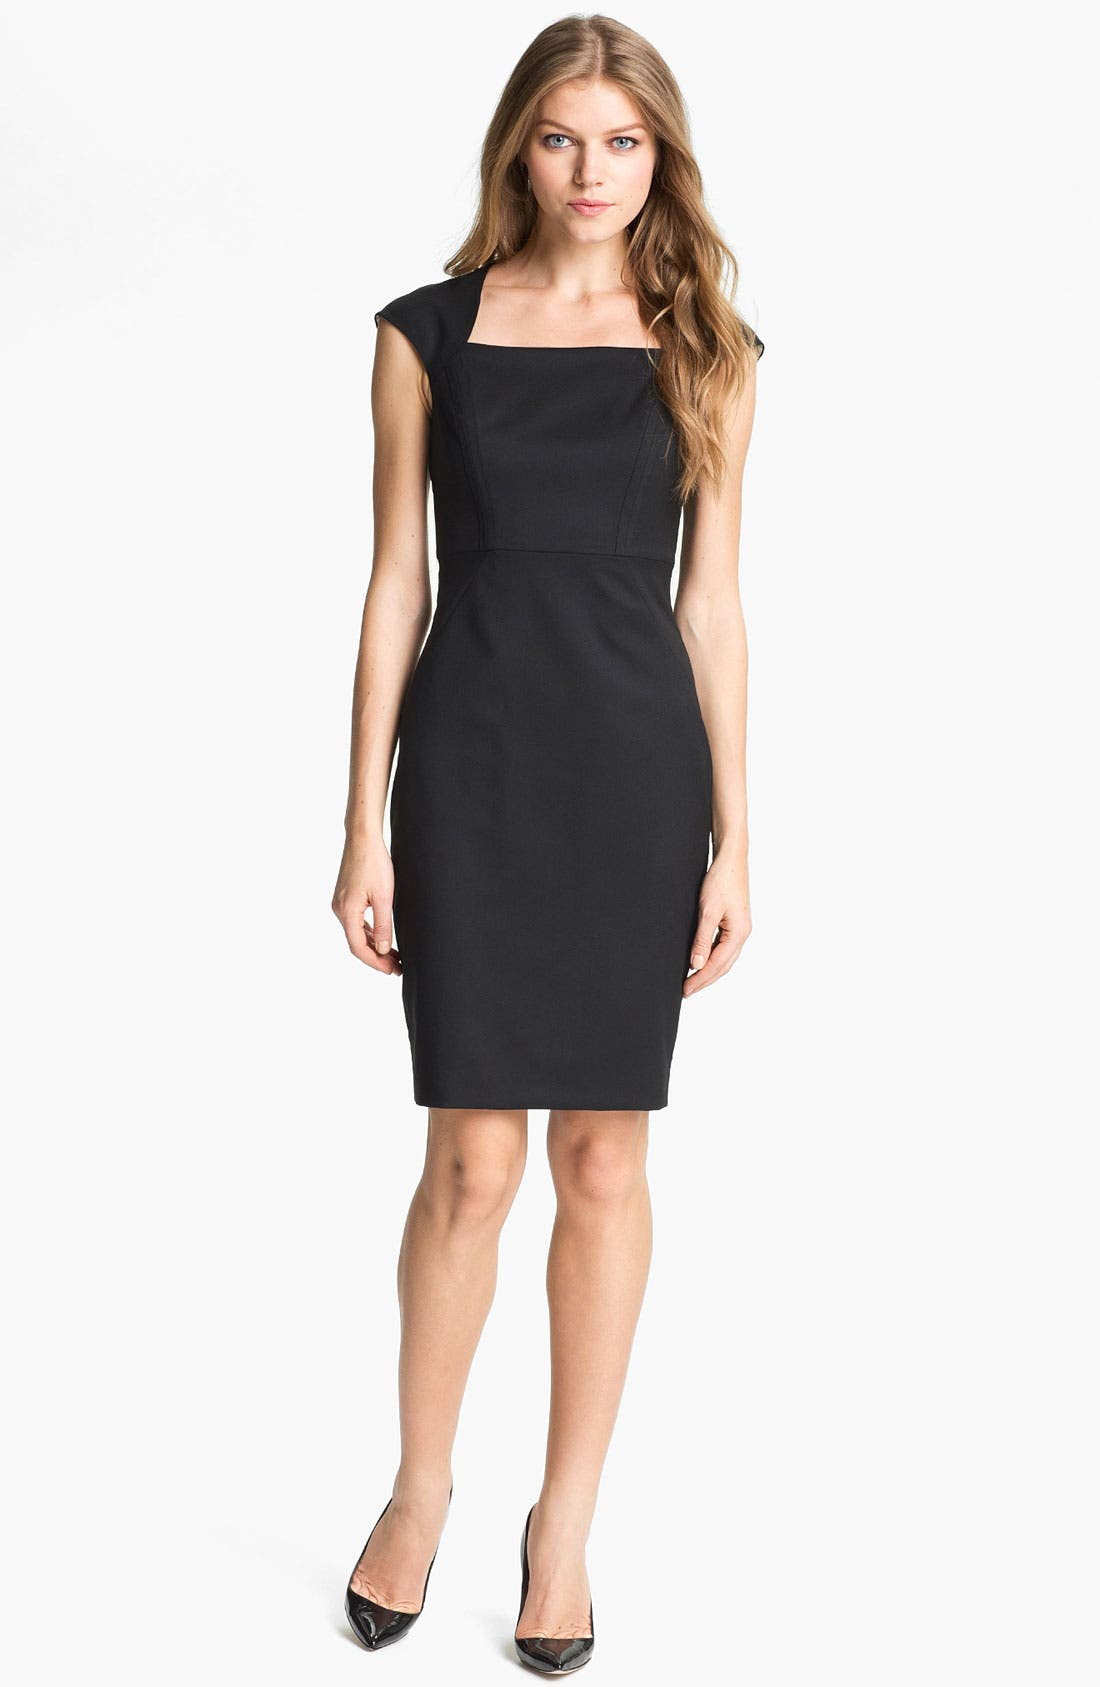 Alternate Image 1 Selected - Ted Baker London 'Miakod' Wool Blend Sheath Dress